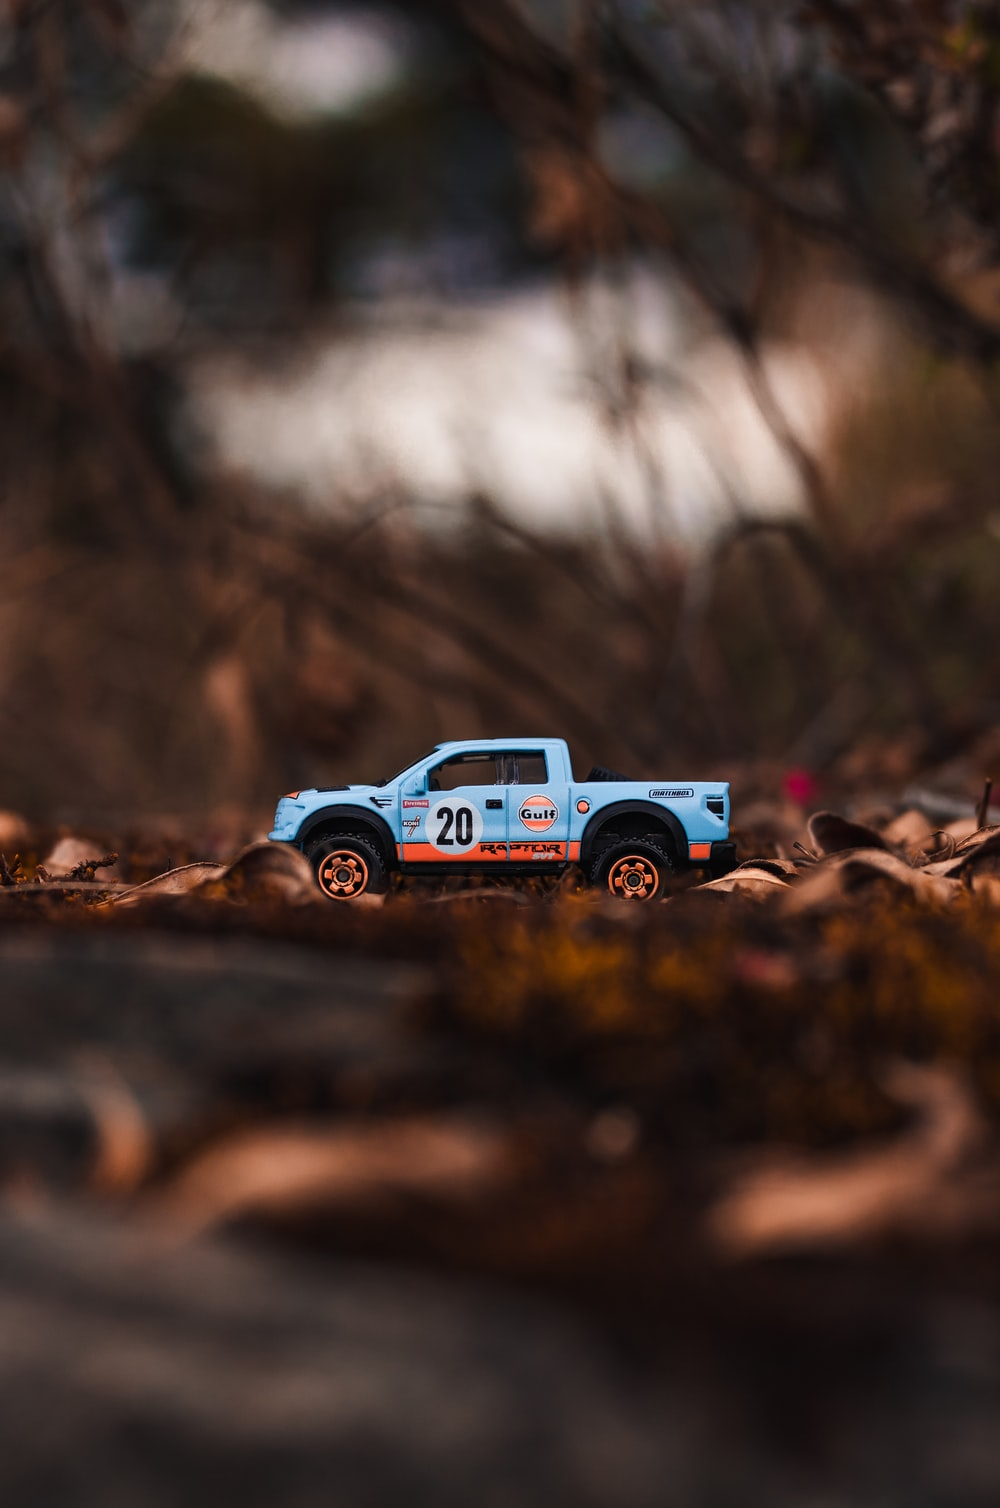 blue truck scale model on ground